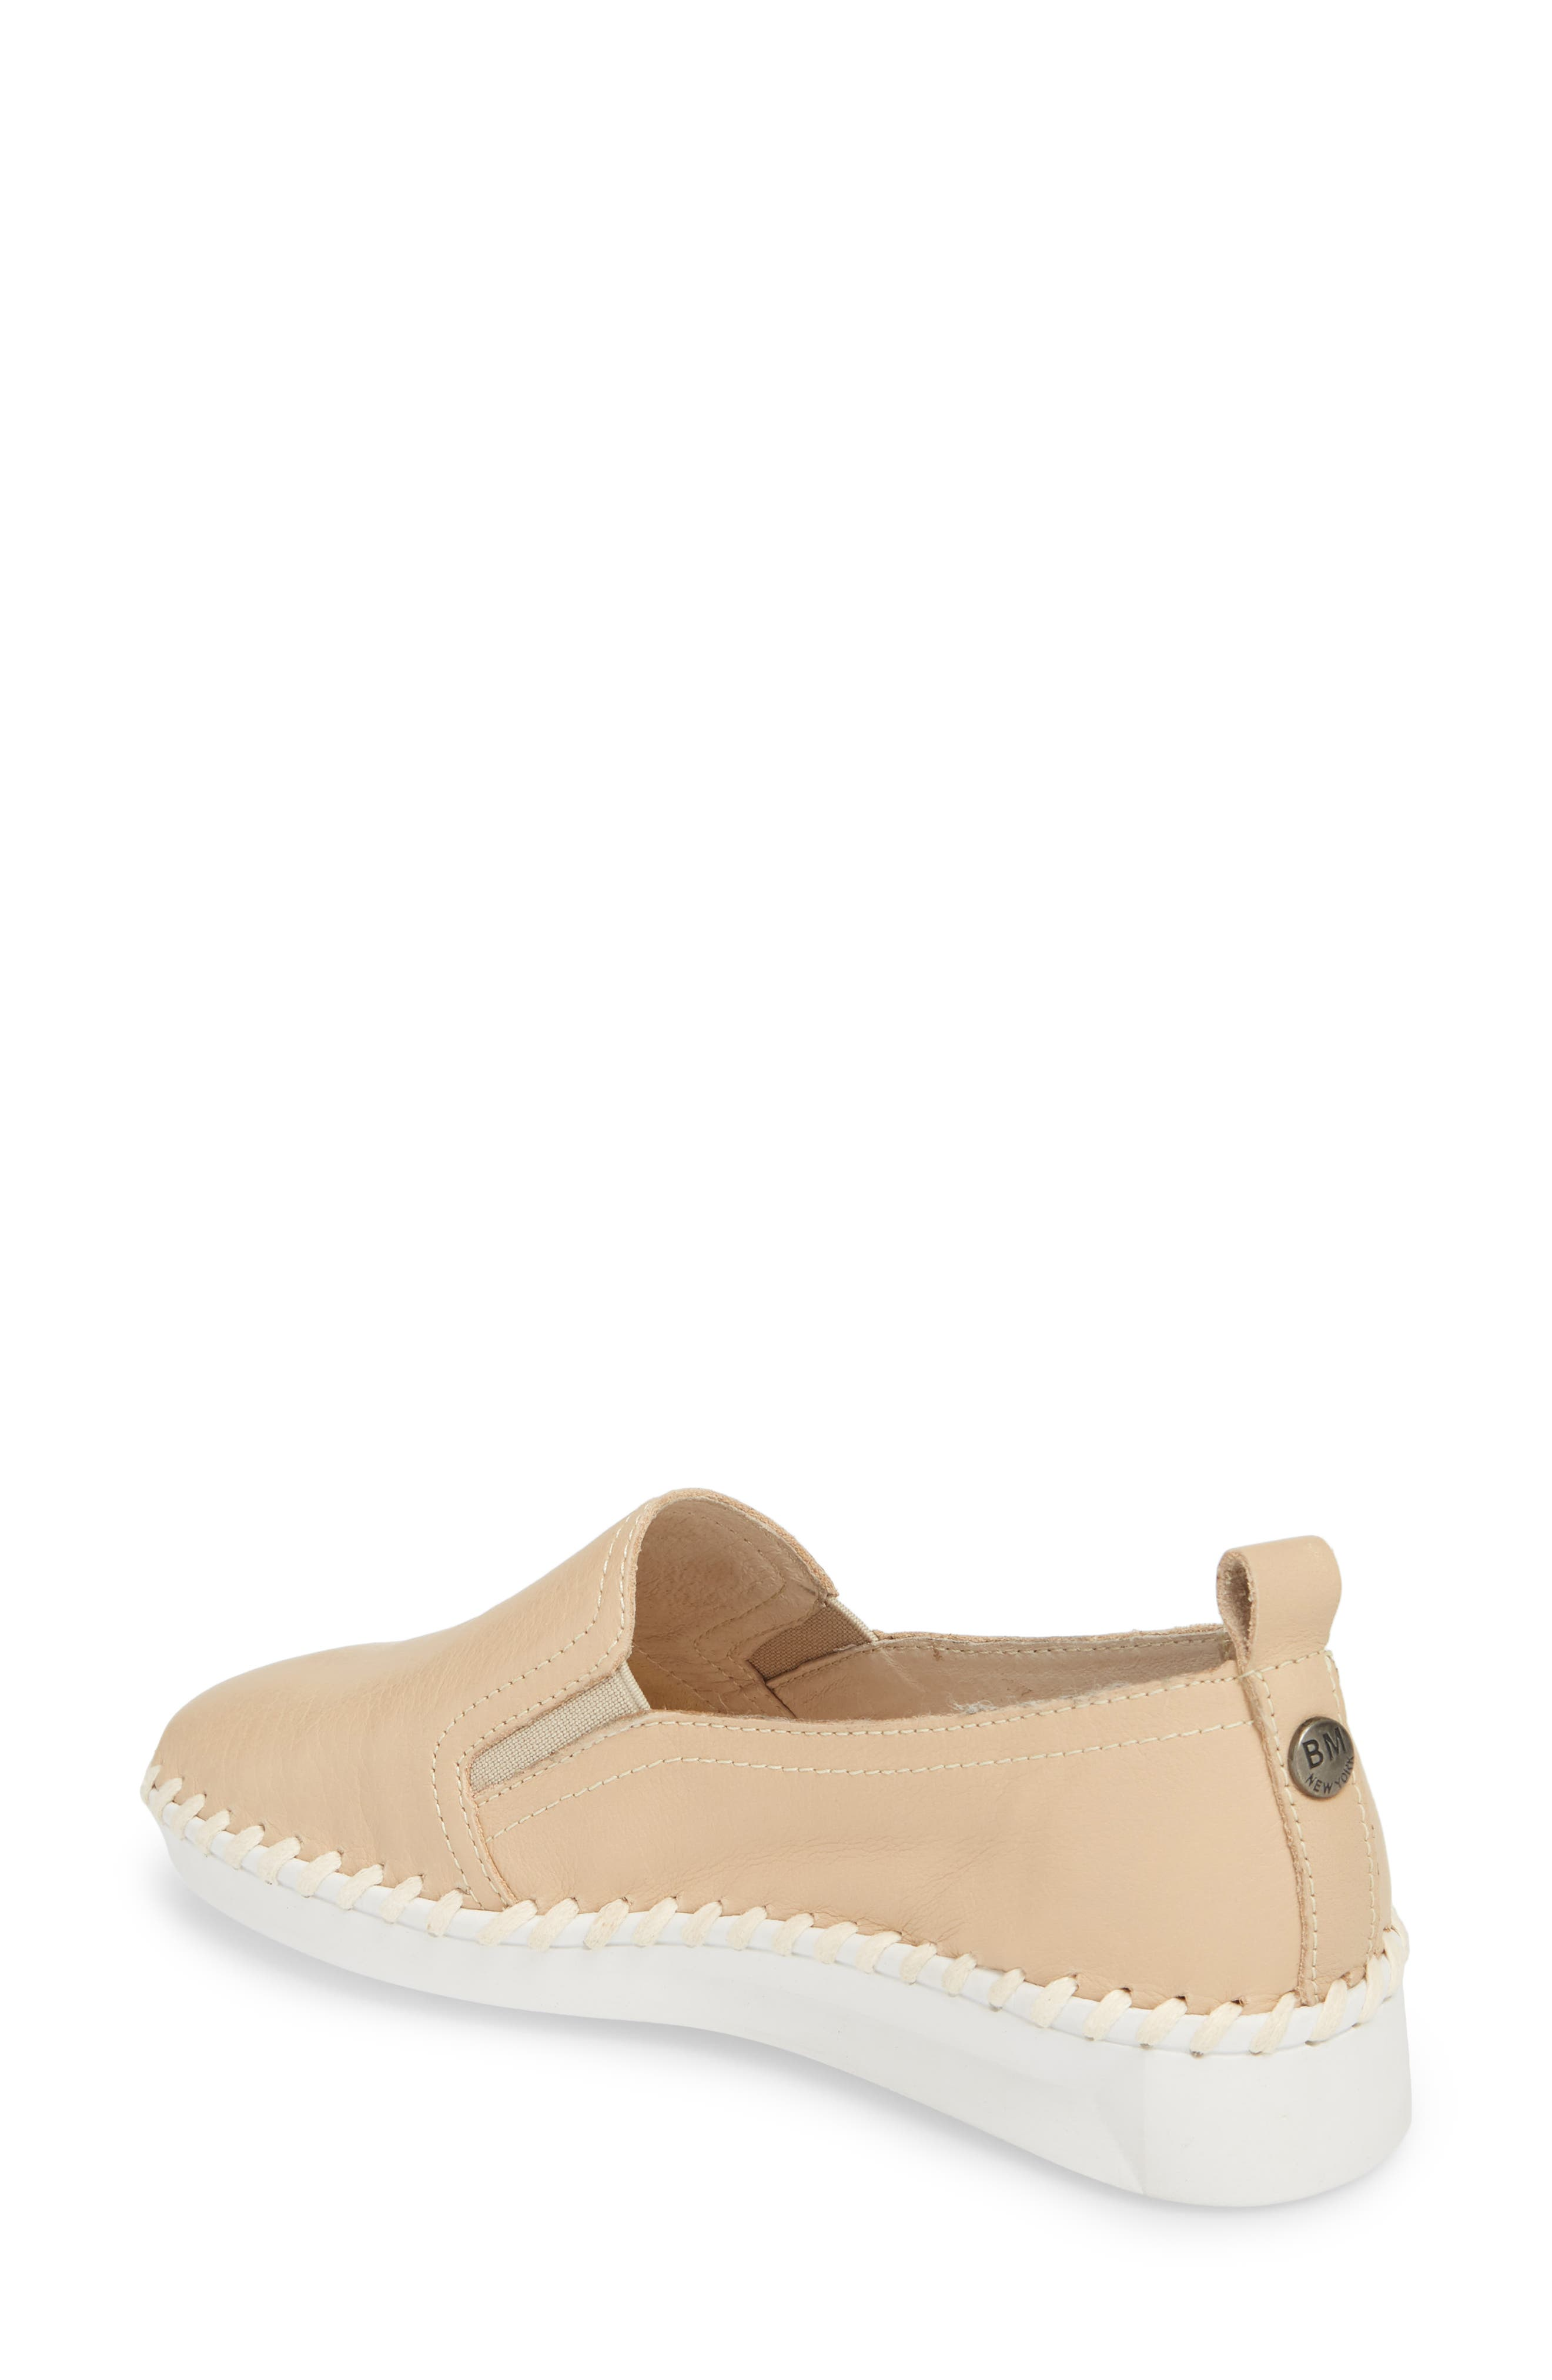 TW85 Slip-On Sneaker,                             Alternate thumbnail 2, color,                             NUDE LEATHER